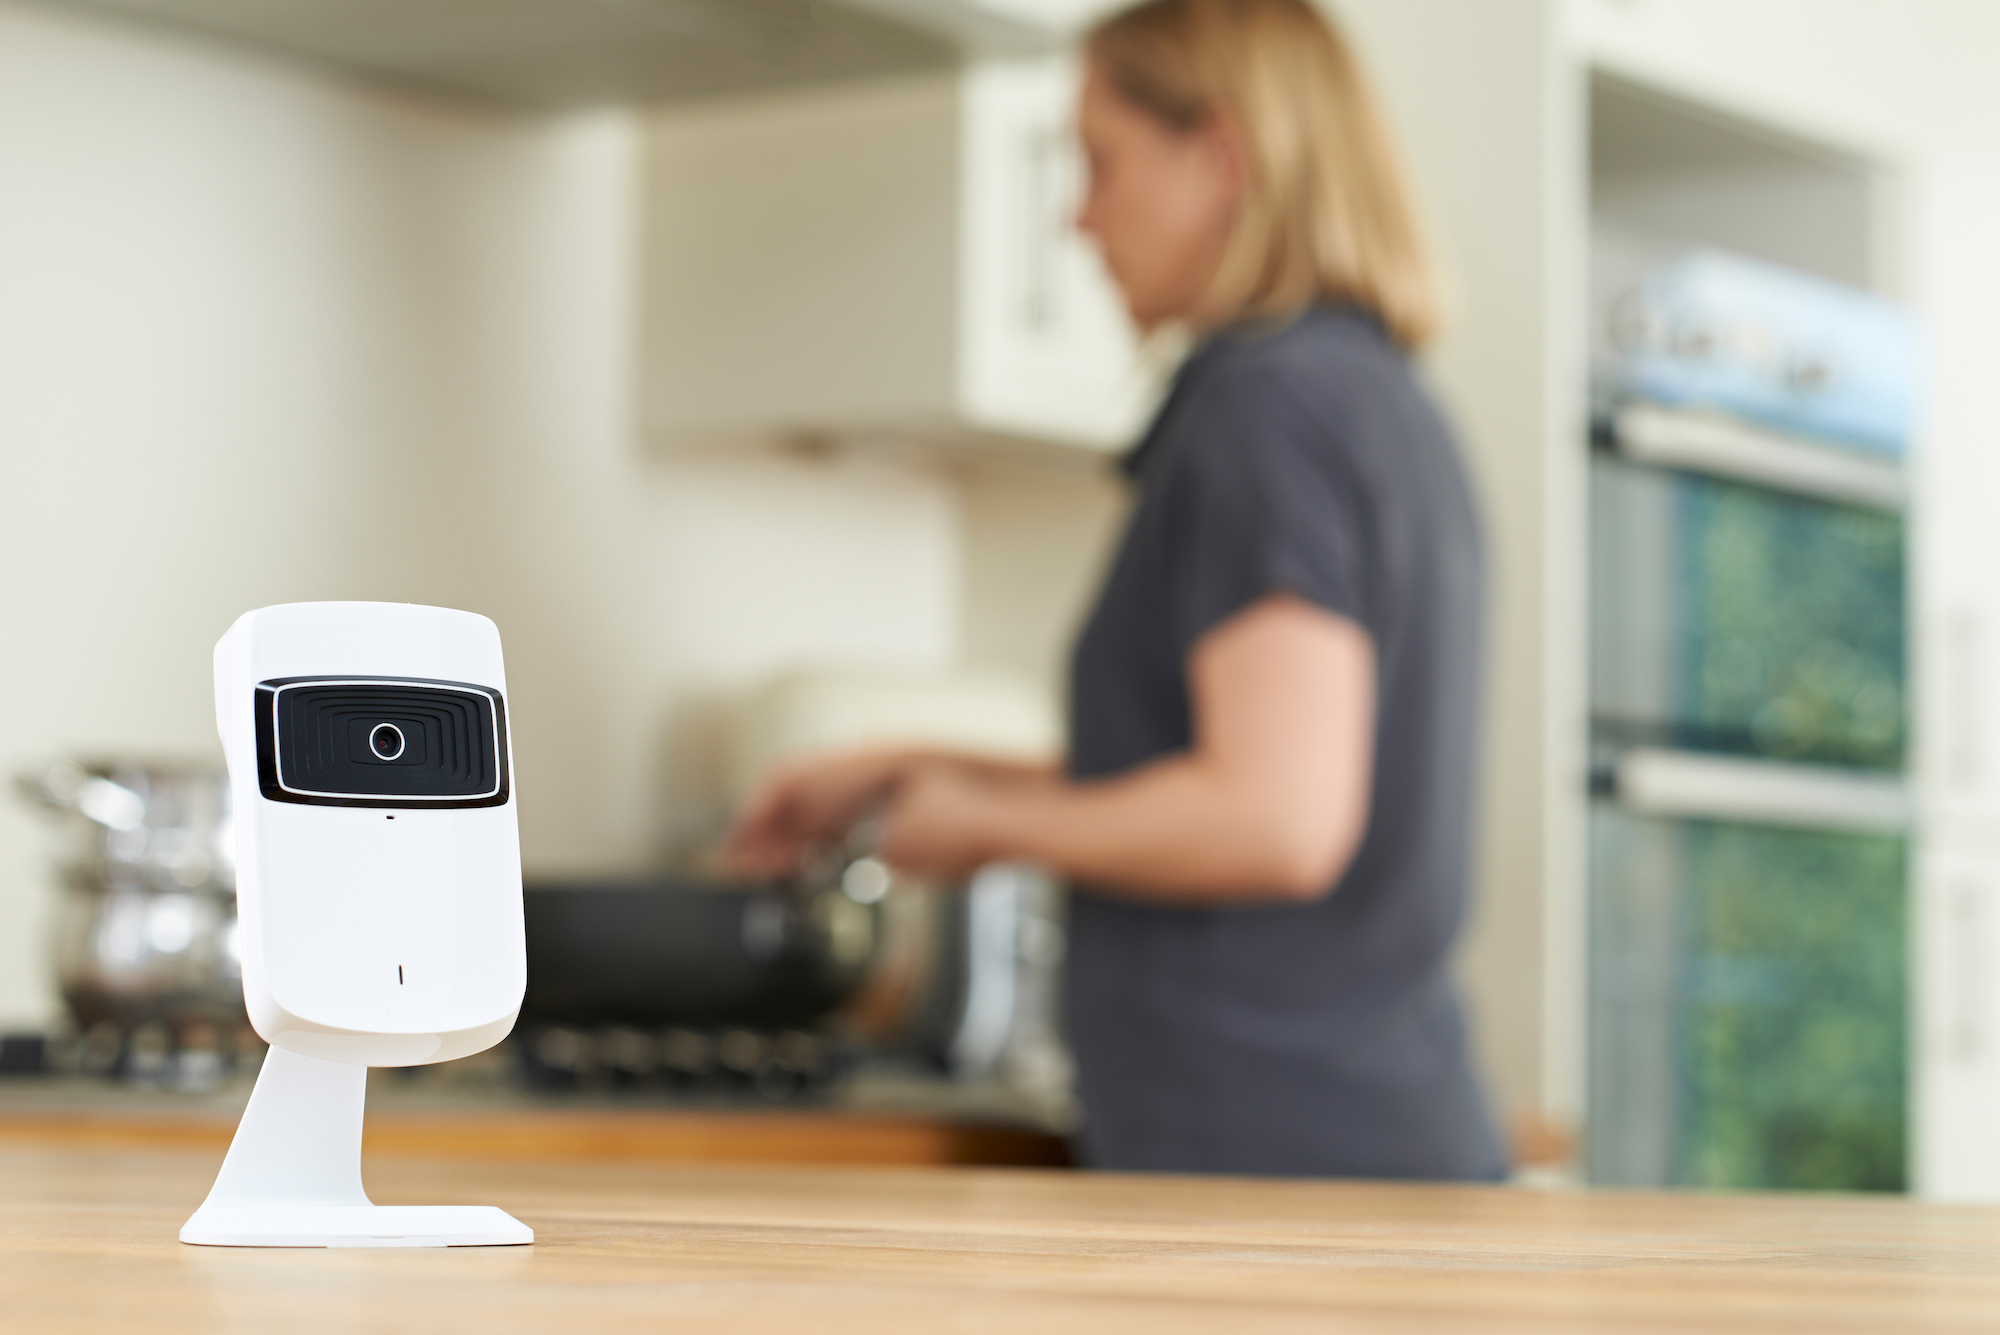 modern wireless security camera inside the kitchen